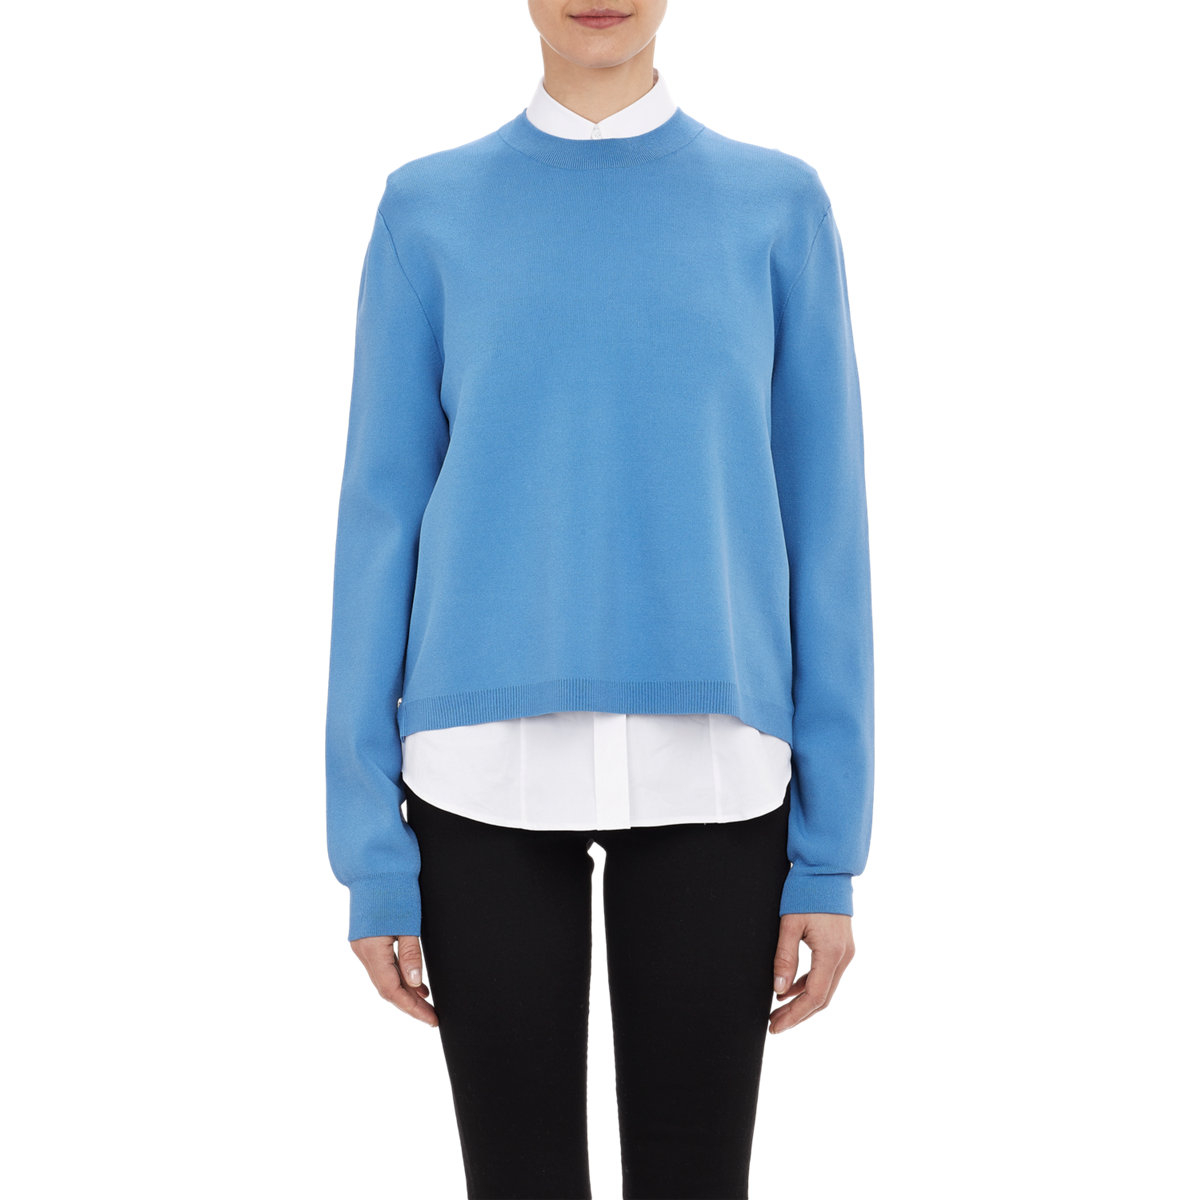 acne studios women 39 s misty sweater in blue lyst. Black Bedroom Furniture Sets. Home Design Ideas